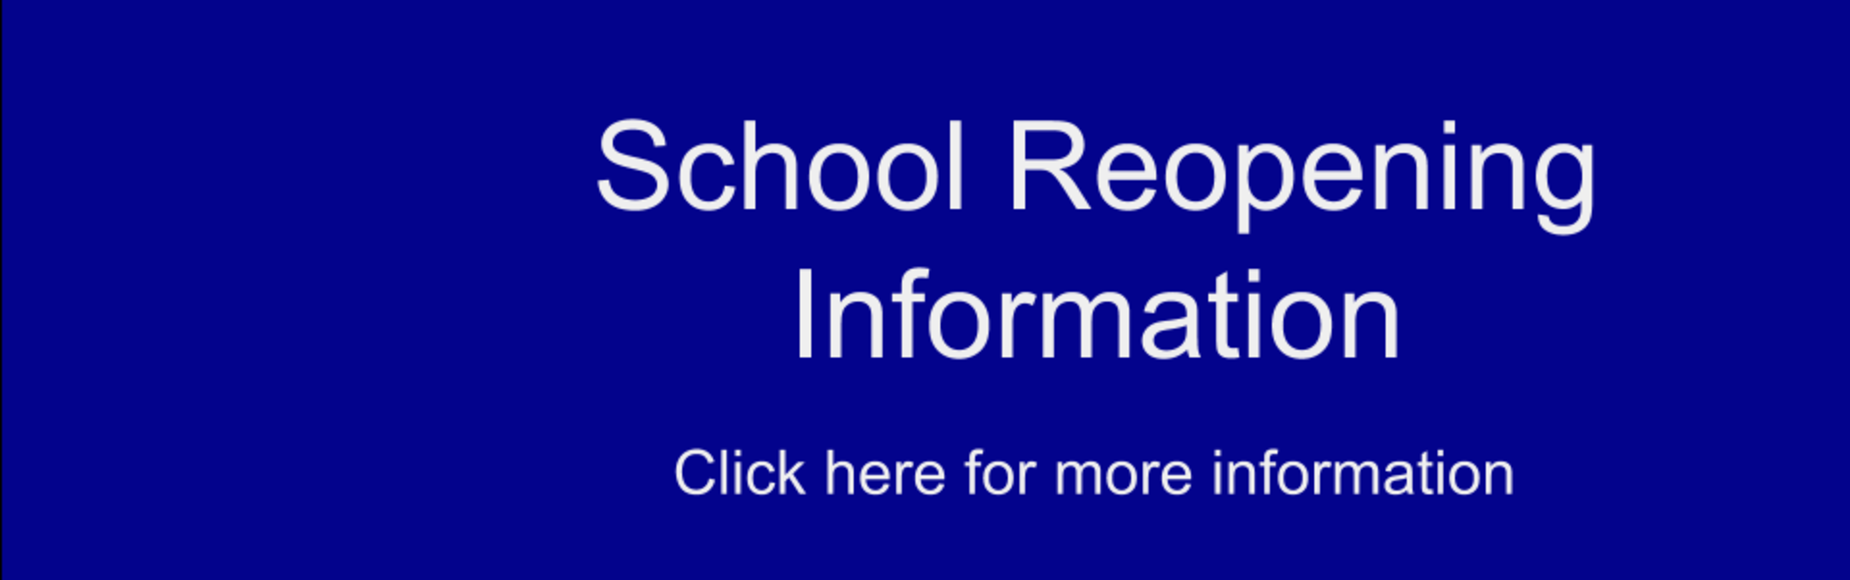 Link to page with more information about school reopening